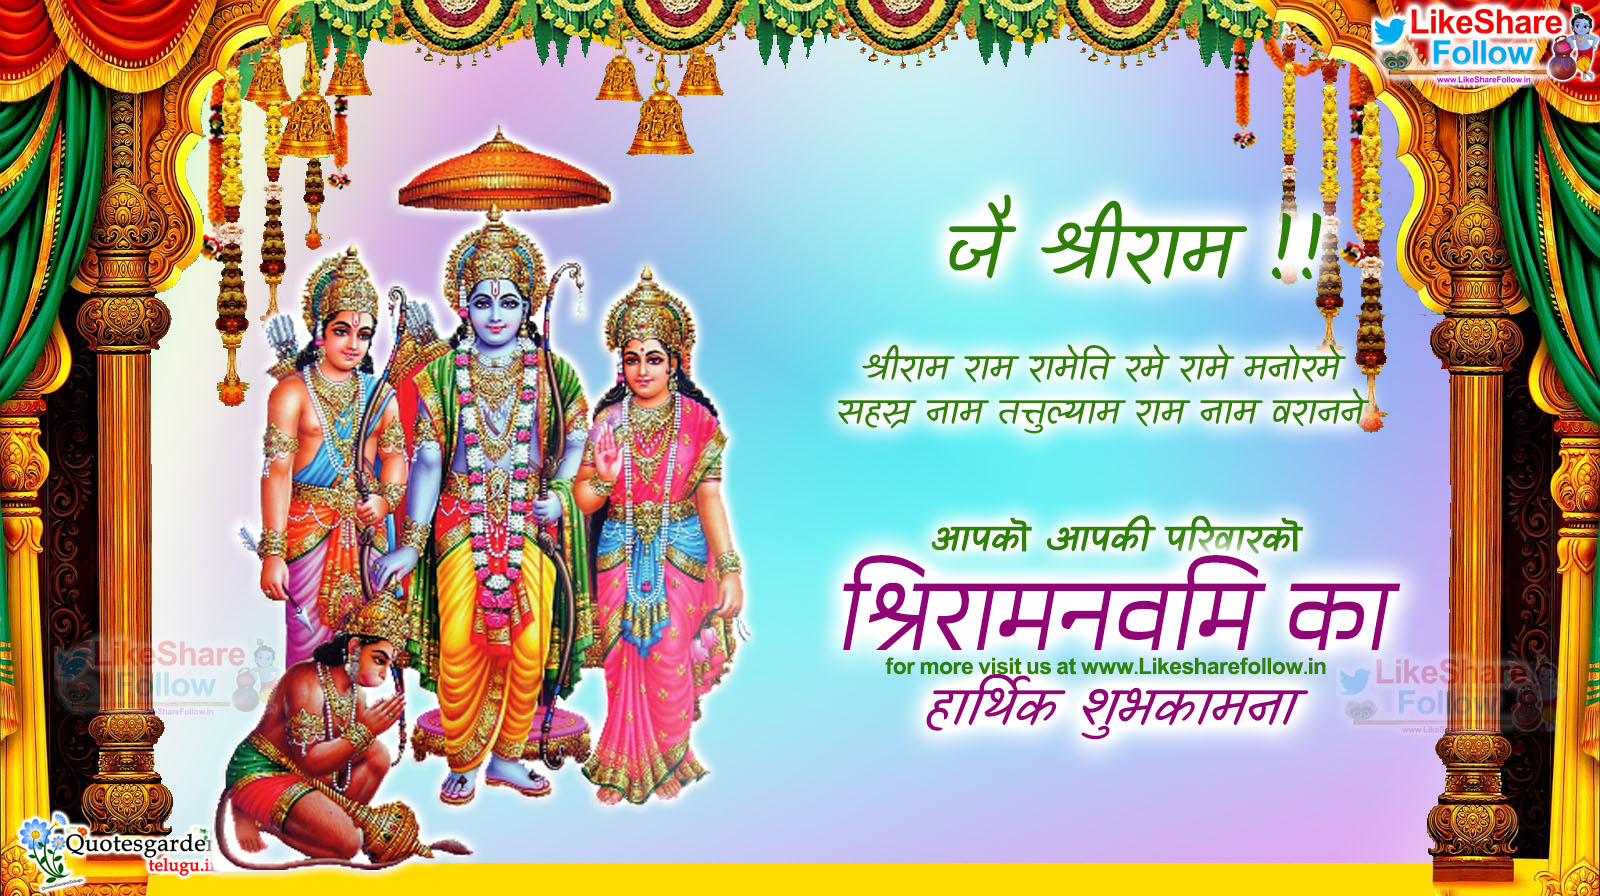 Happy Ram Navami Wishes Sms In Hindi Images Greetings Like Share